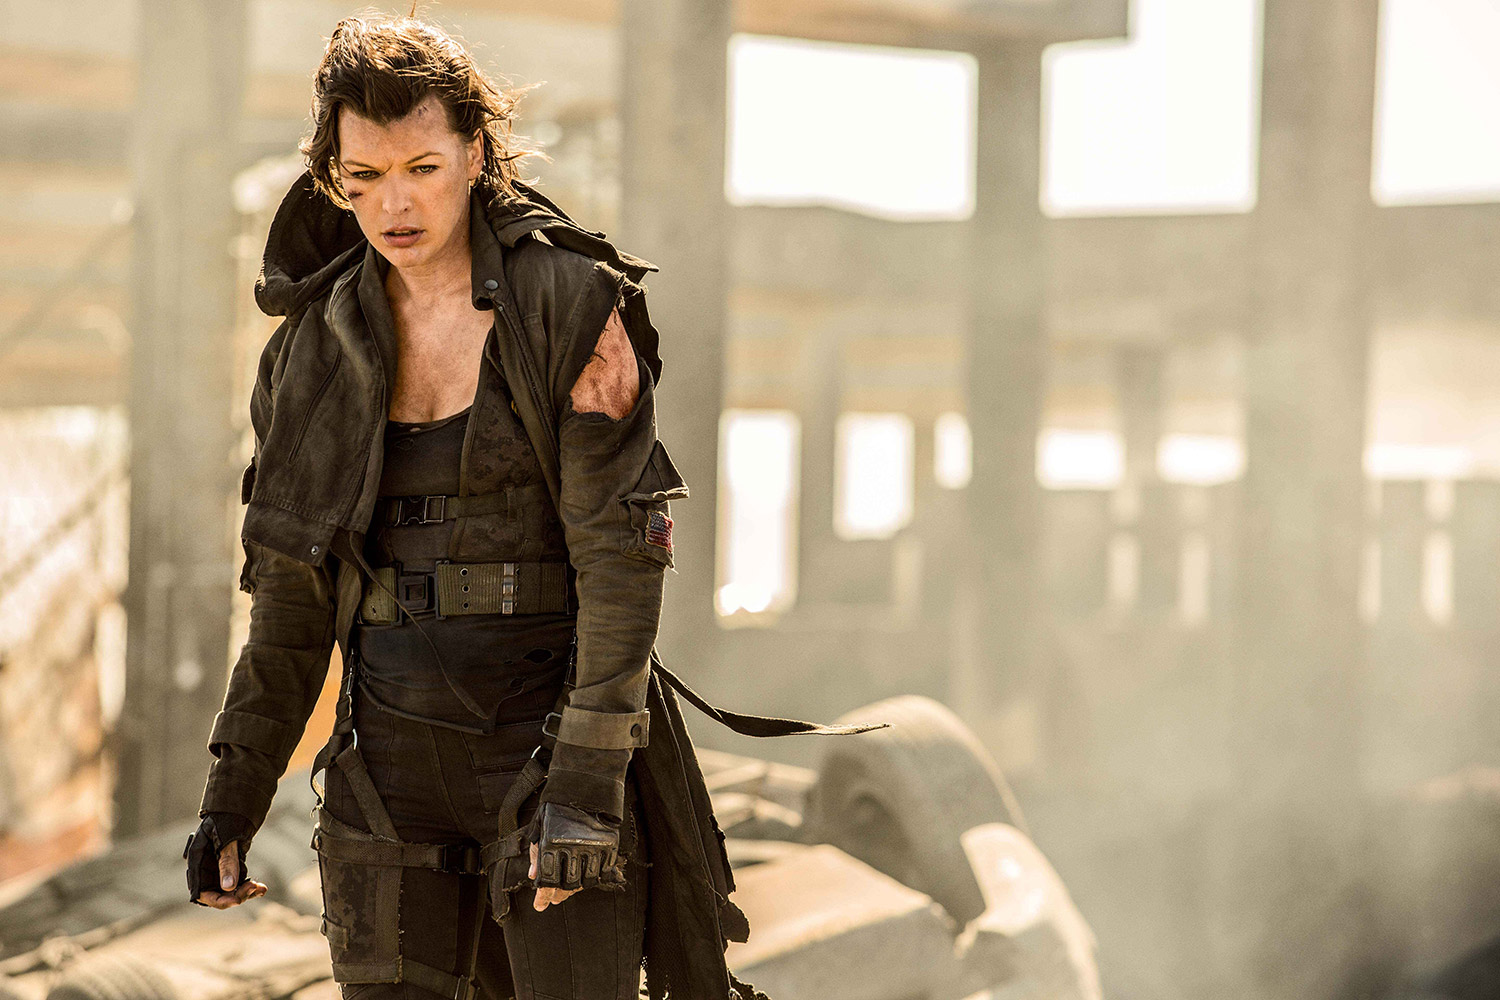 Post-Apocalyptic Movies - Resident Evil: The Final Chapter, Alice